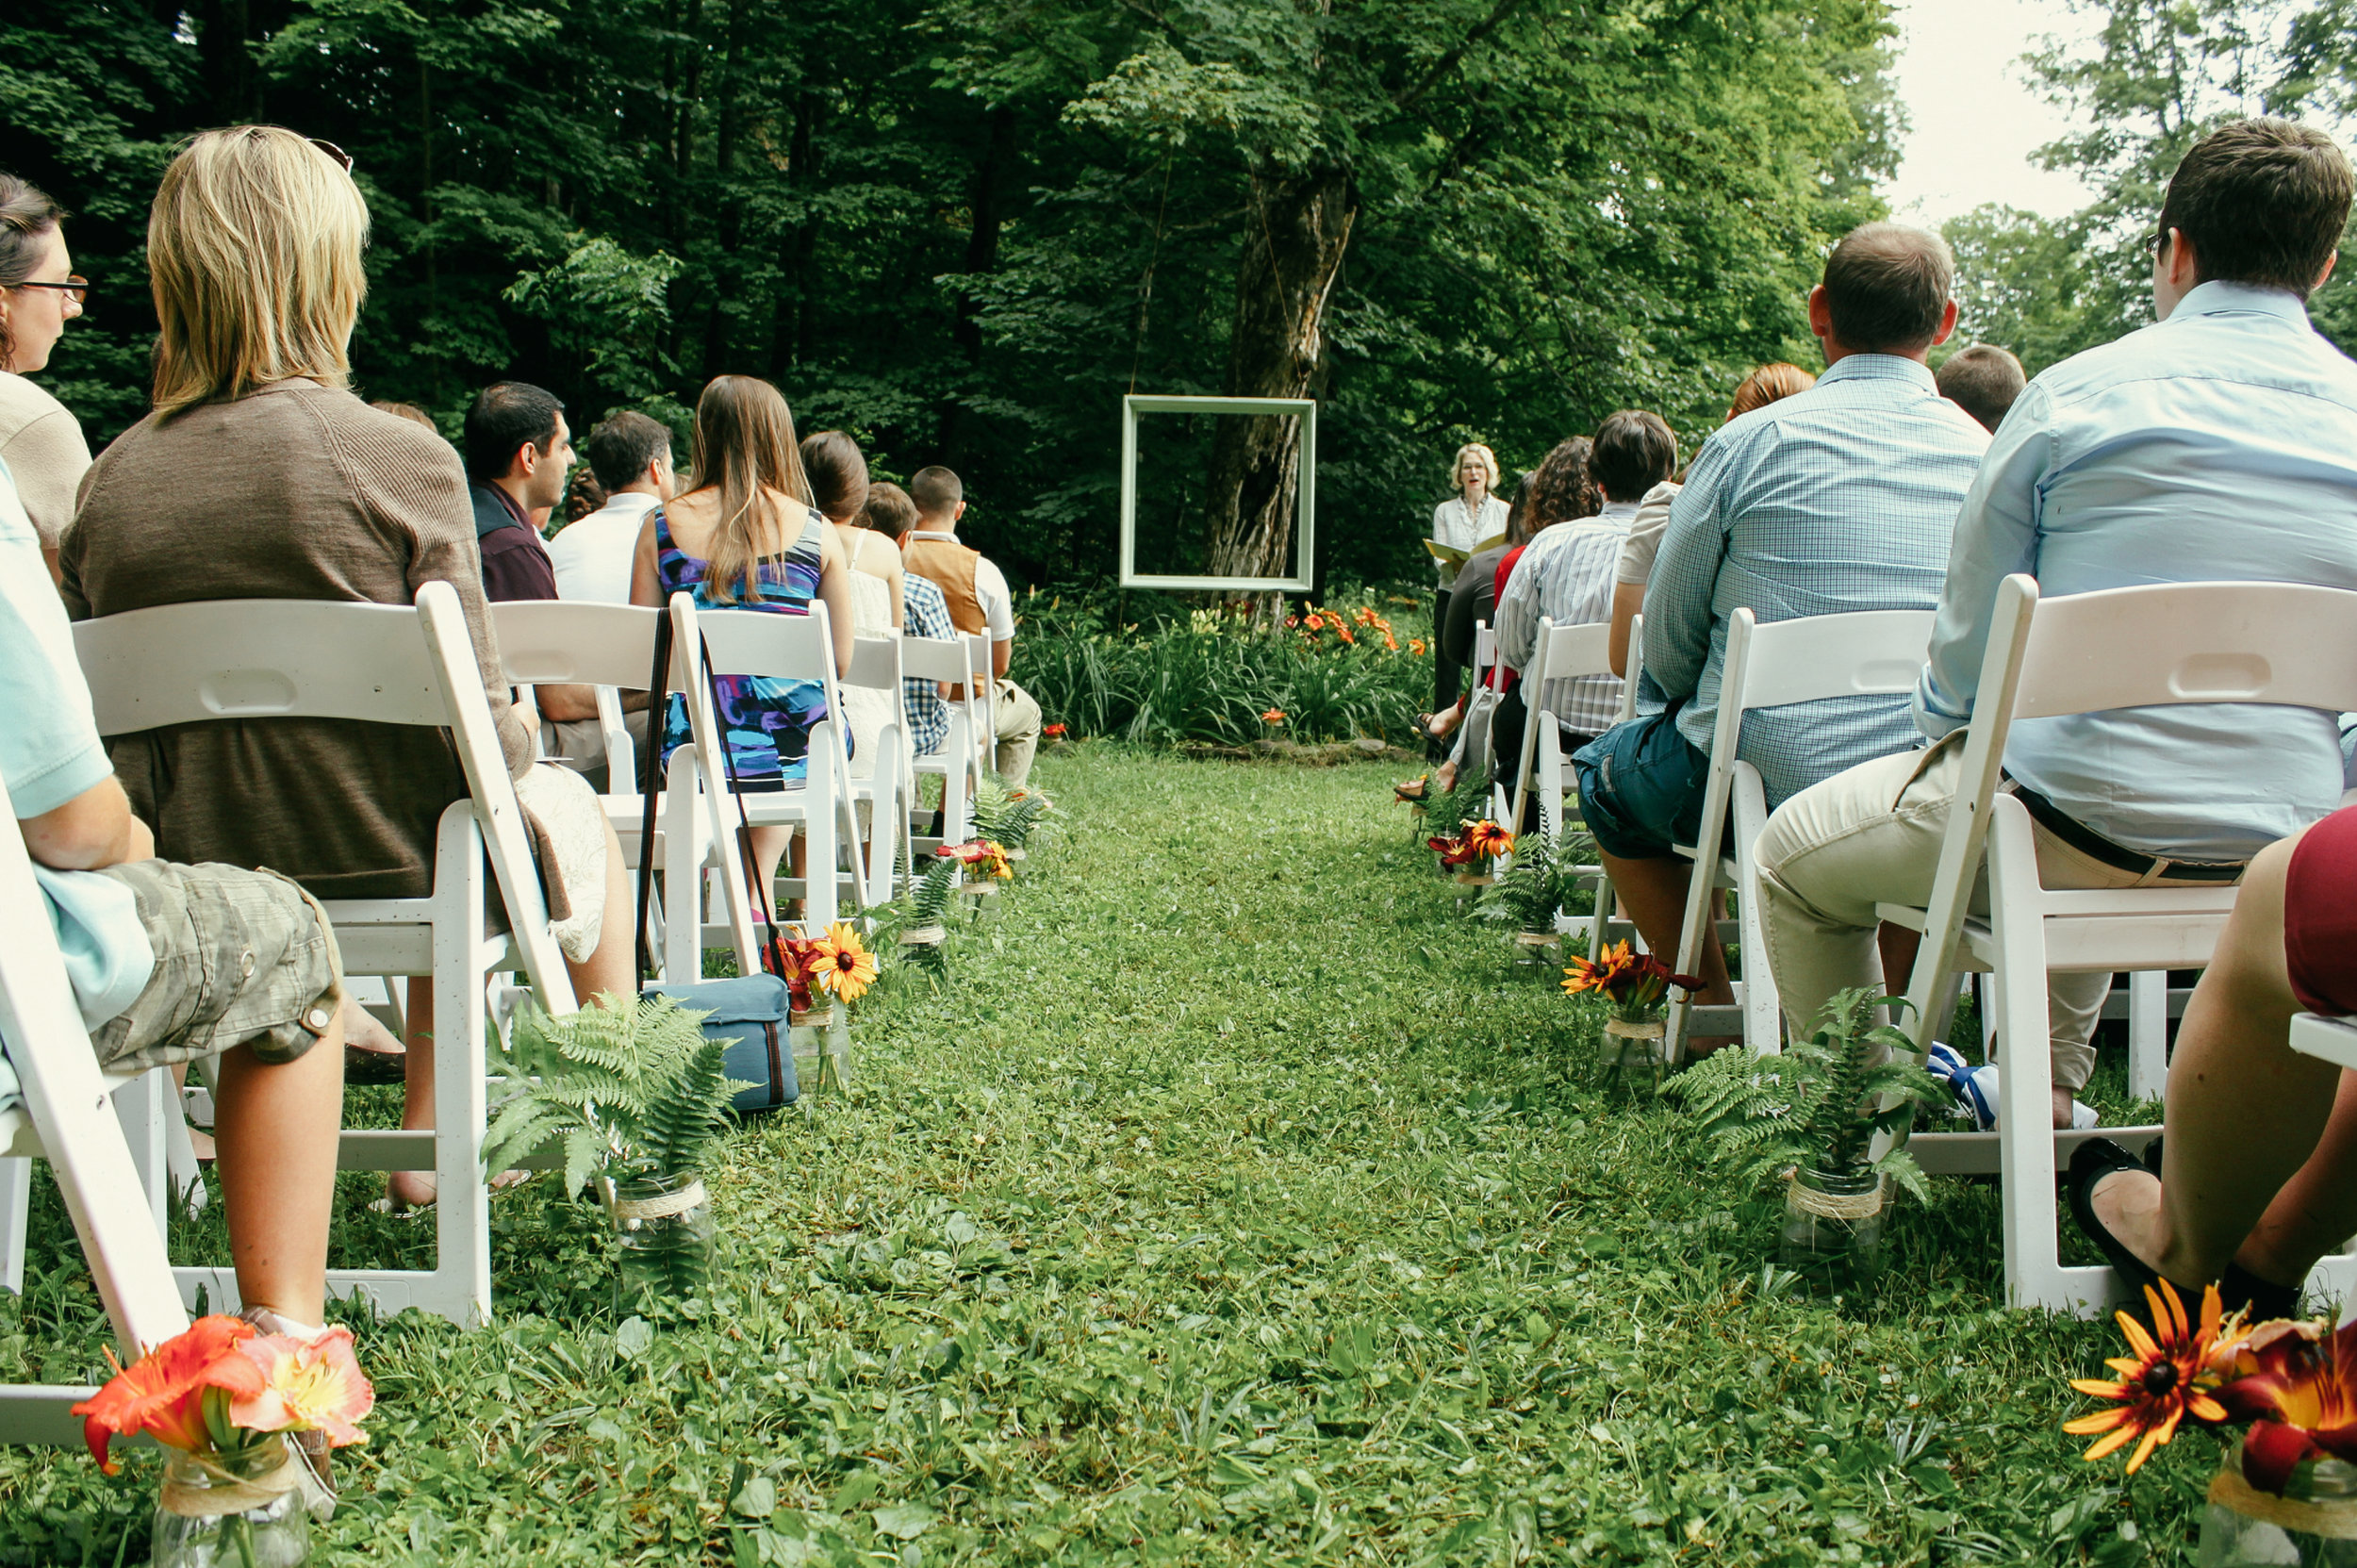 A beautiful country wedding venue on 60 private acres in upstate new york